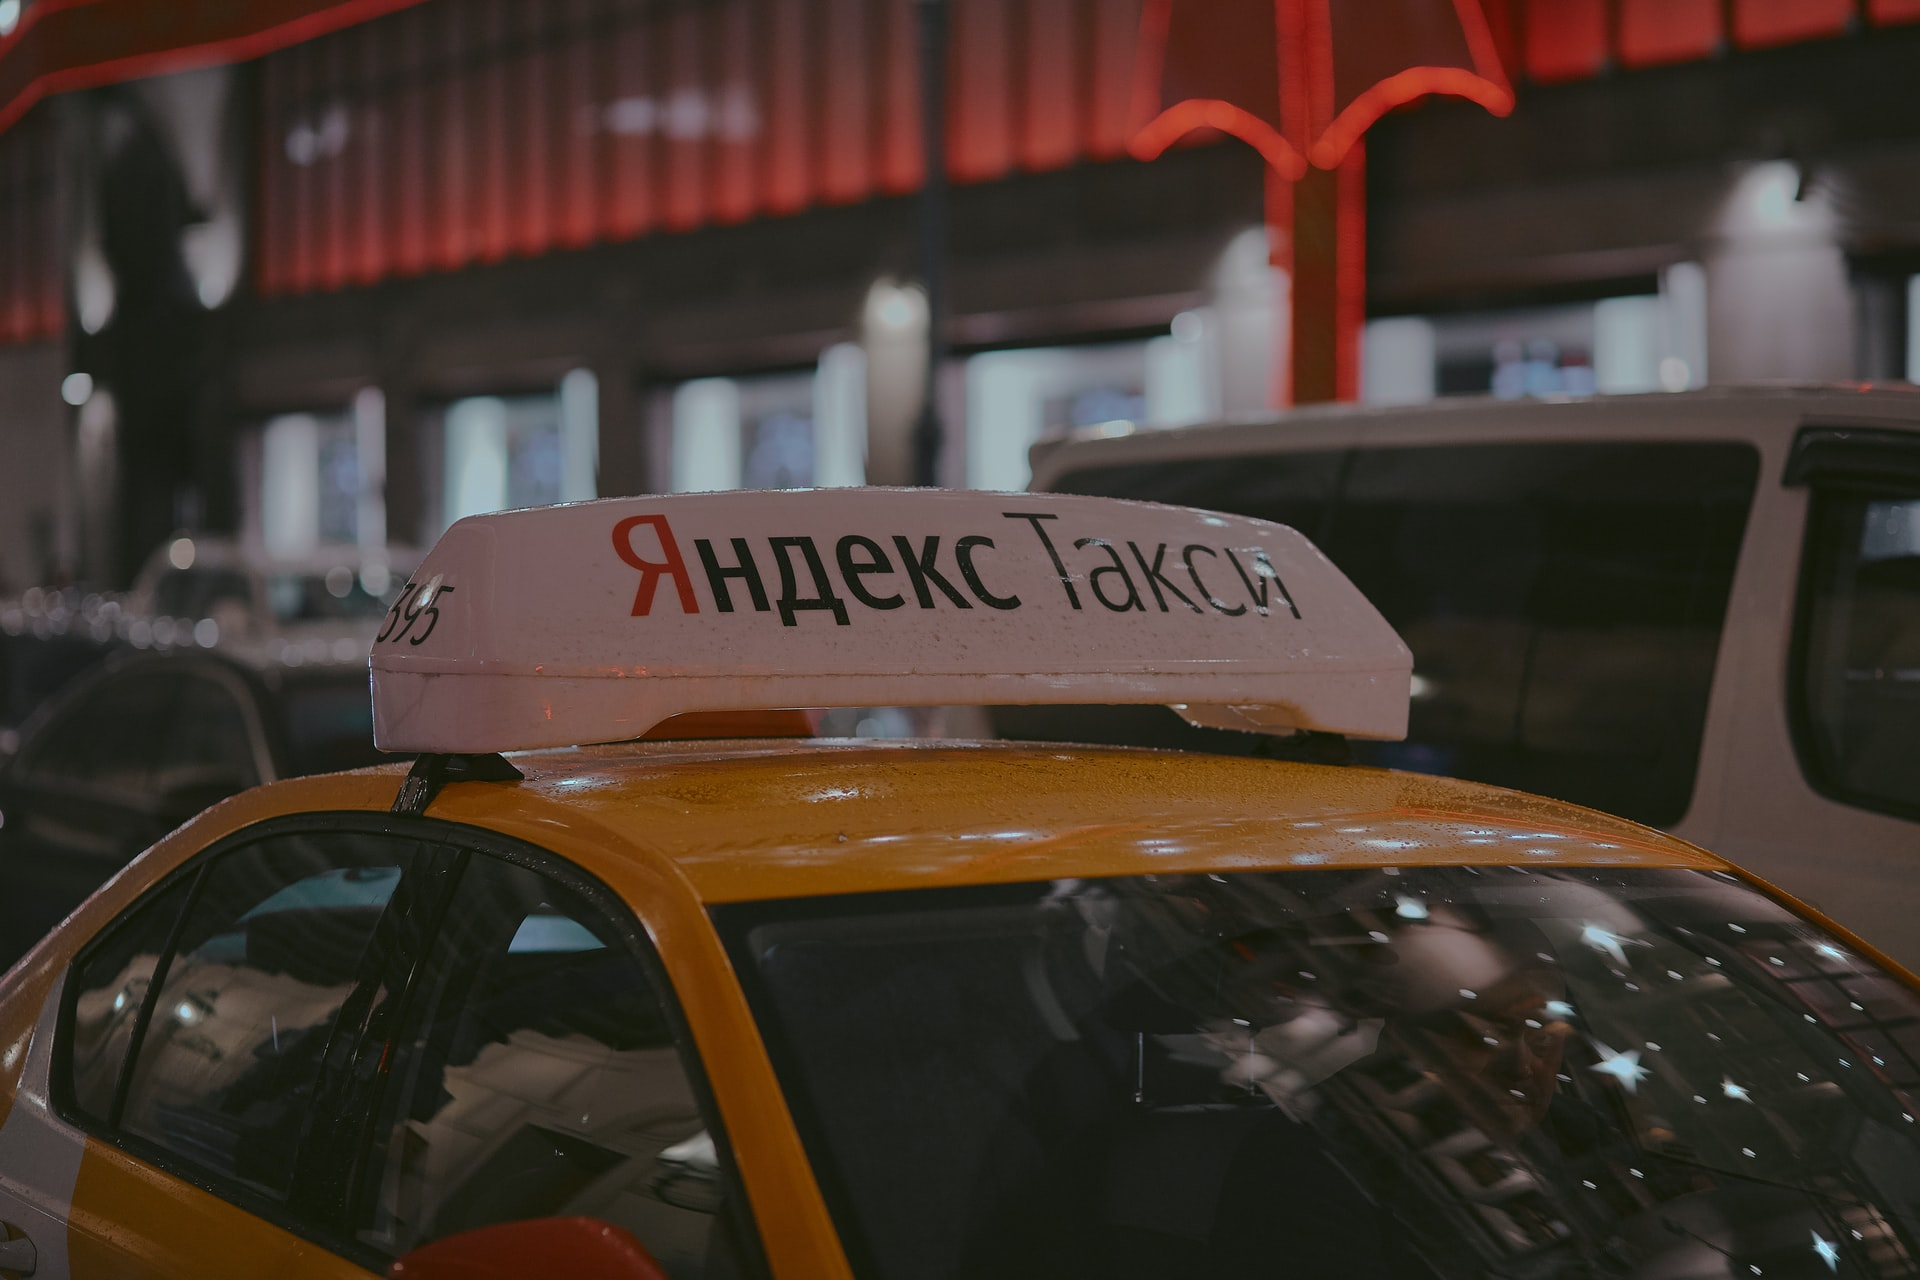 Yandex Taxi in Moscow